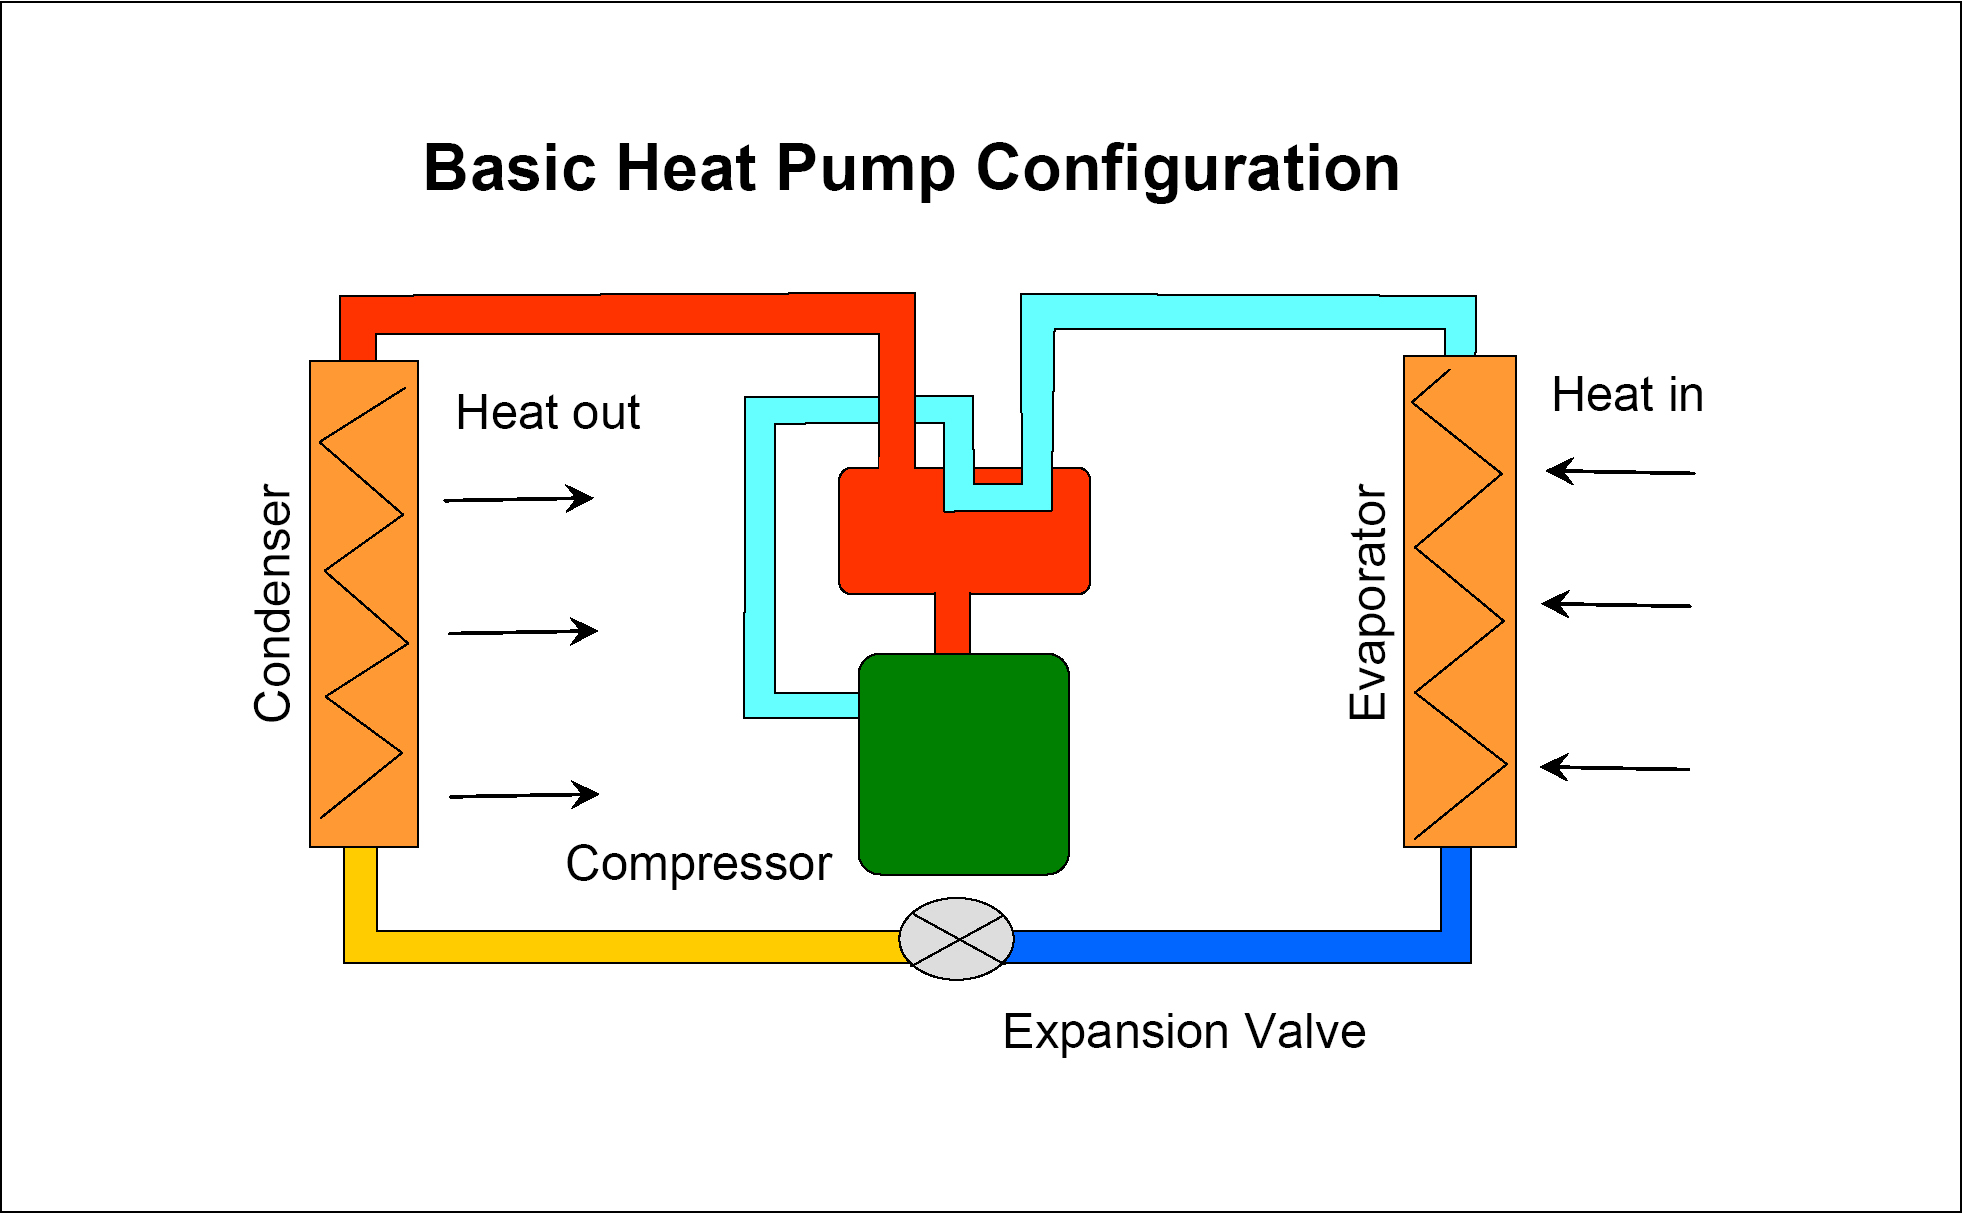 HVAC Heat Pump hvac certification practice tests electrician practice tests air conditioning heat pump diagram at gsmx.co